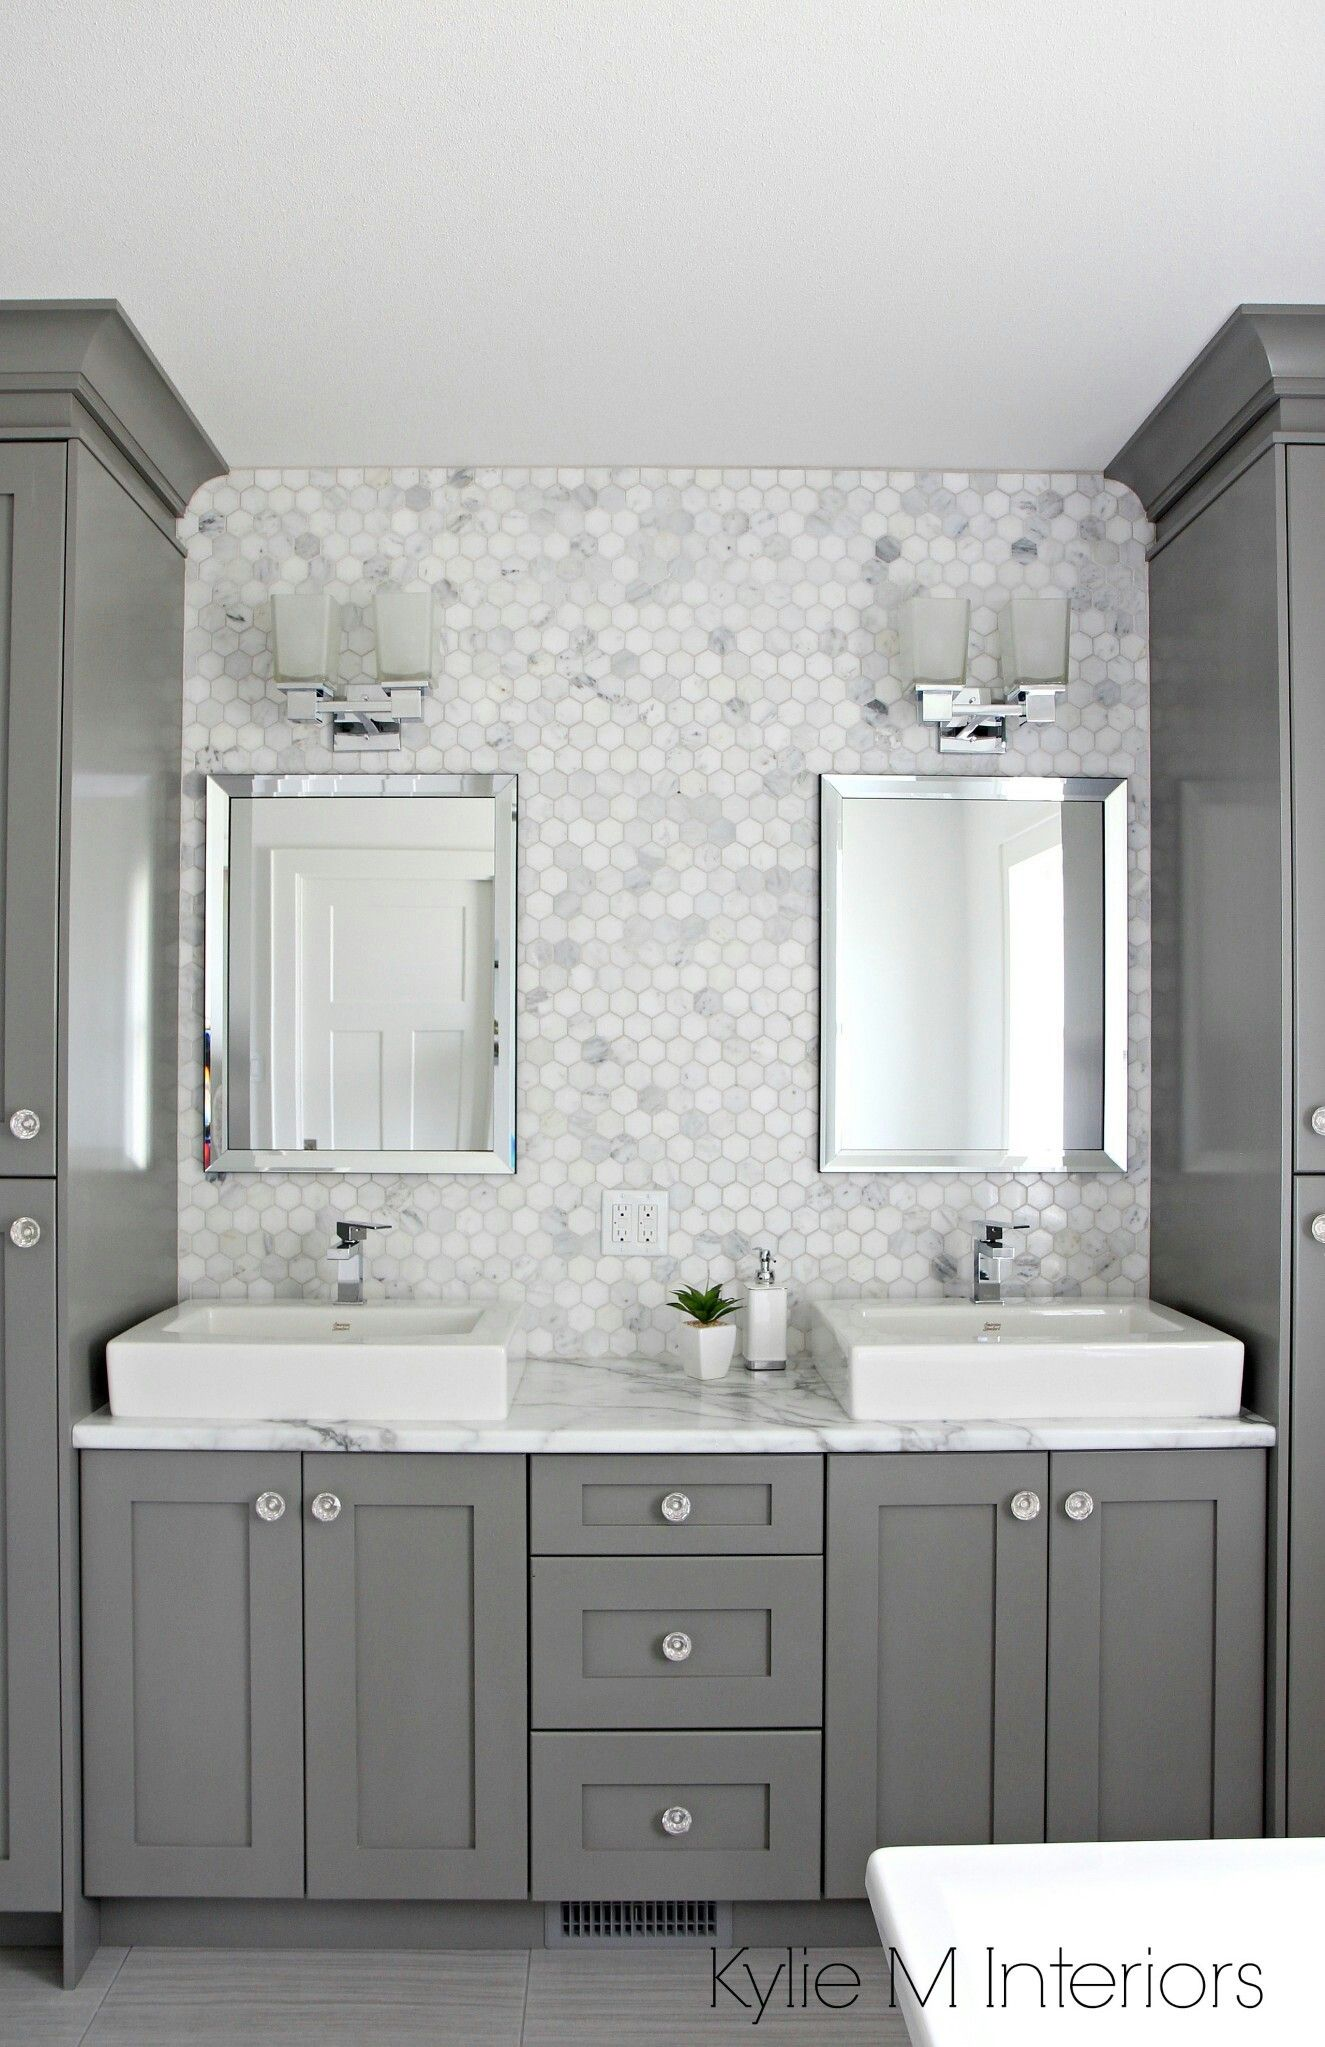 DIY Vanity Mirror Ideas to Make Your Room More Beautiful